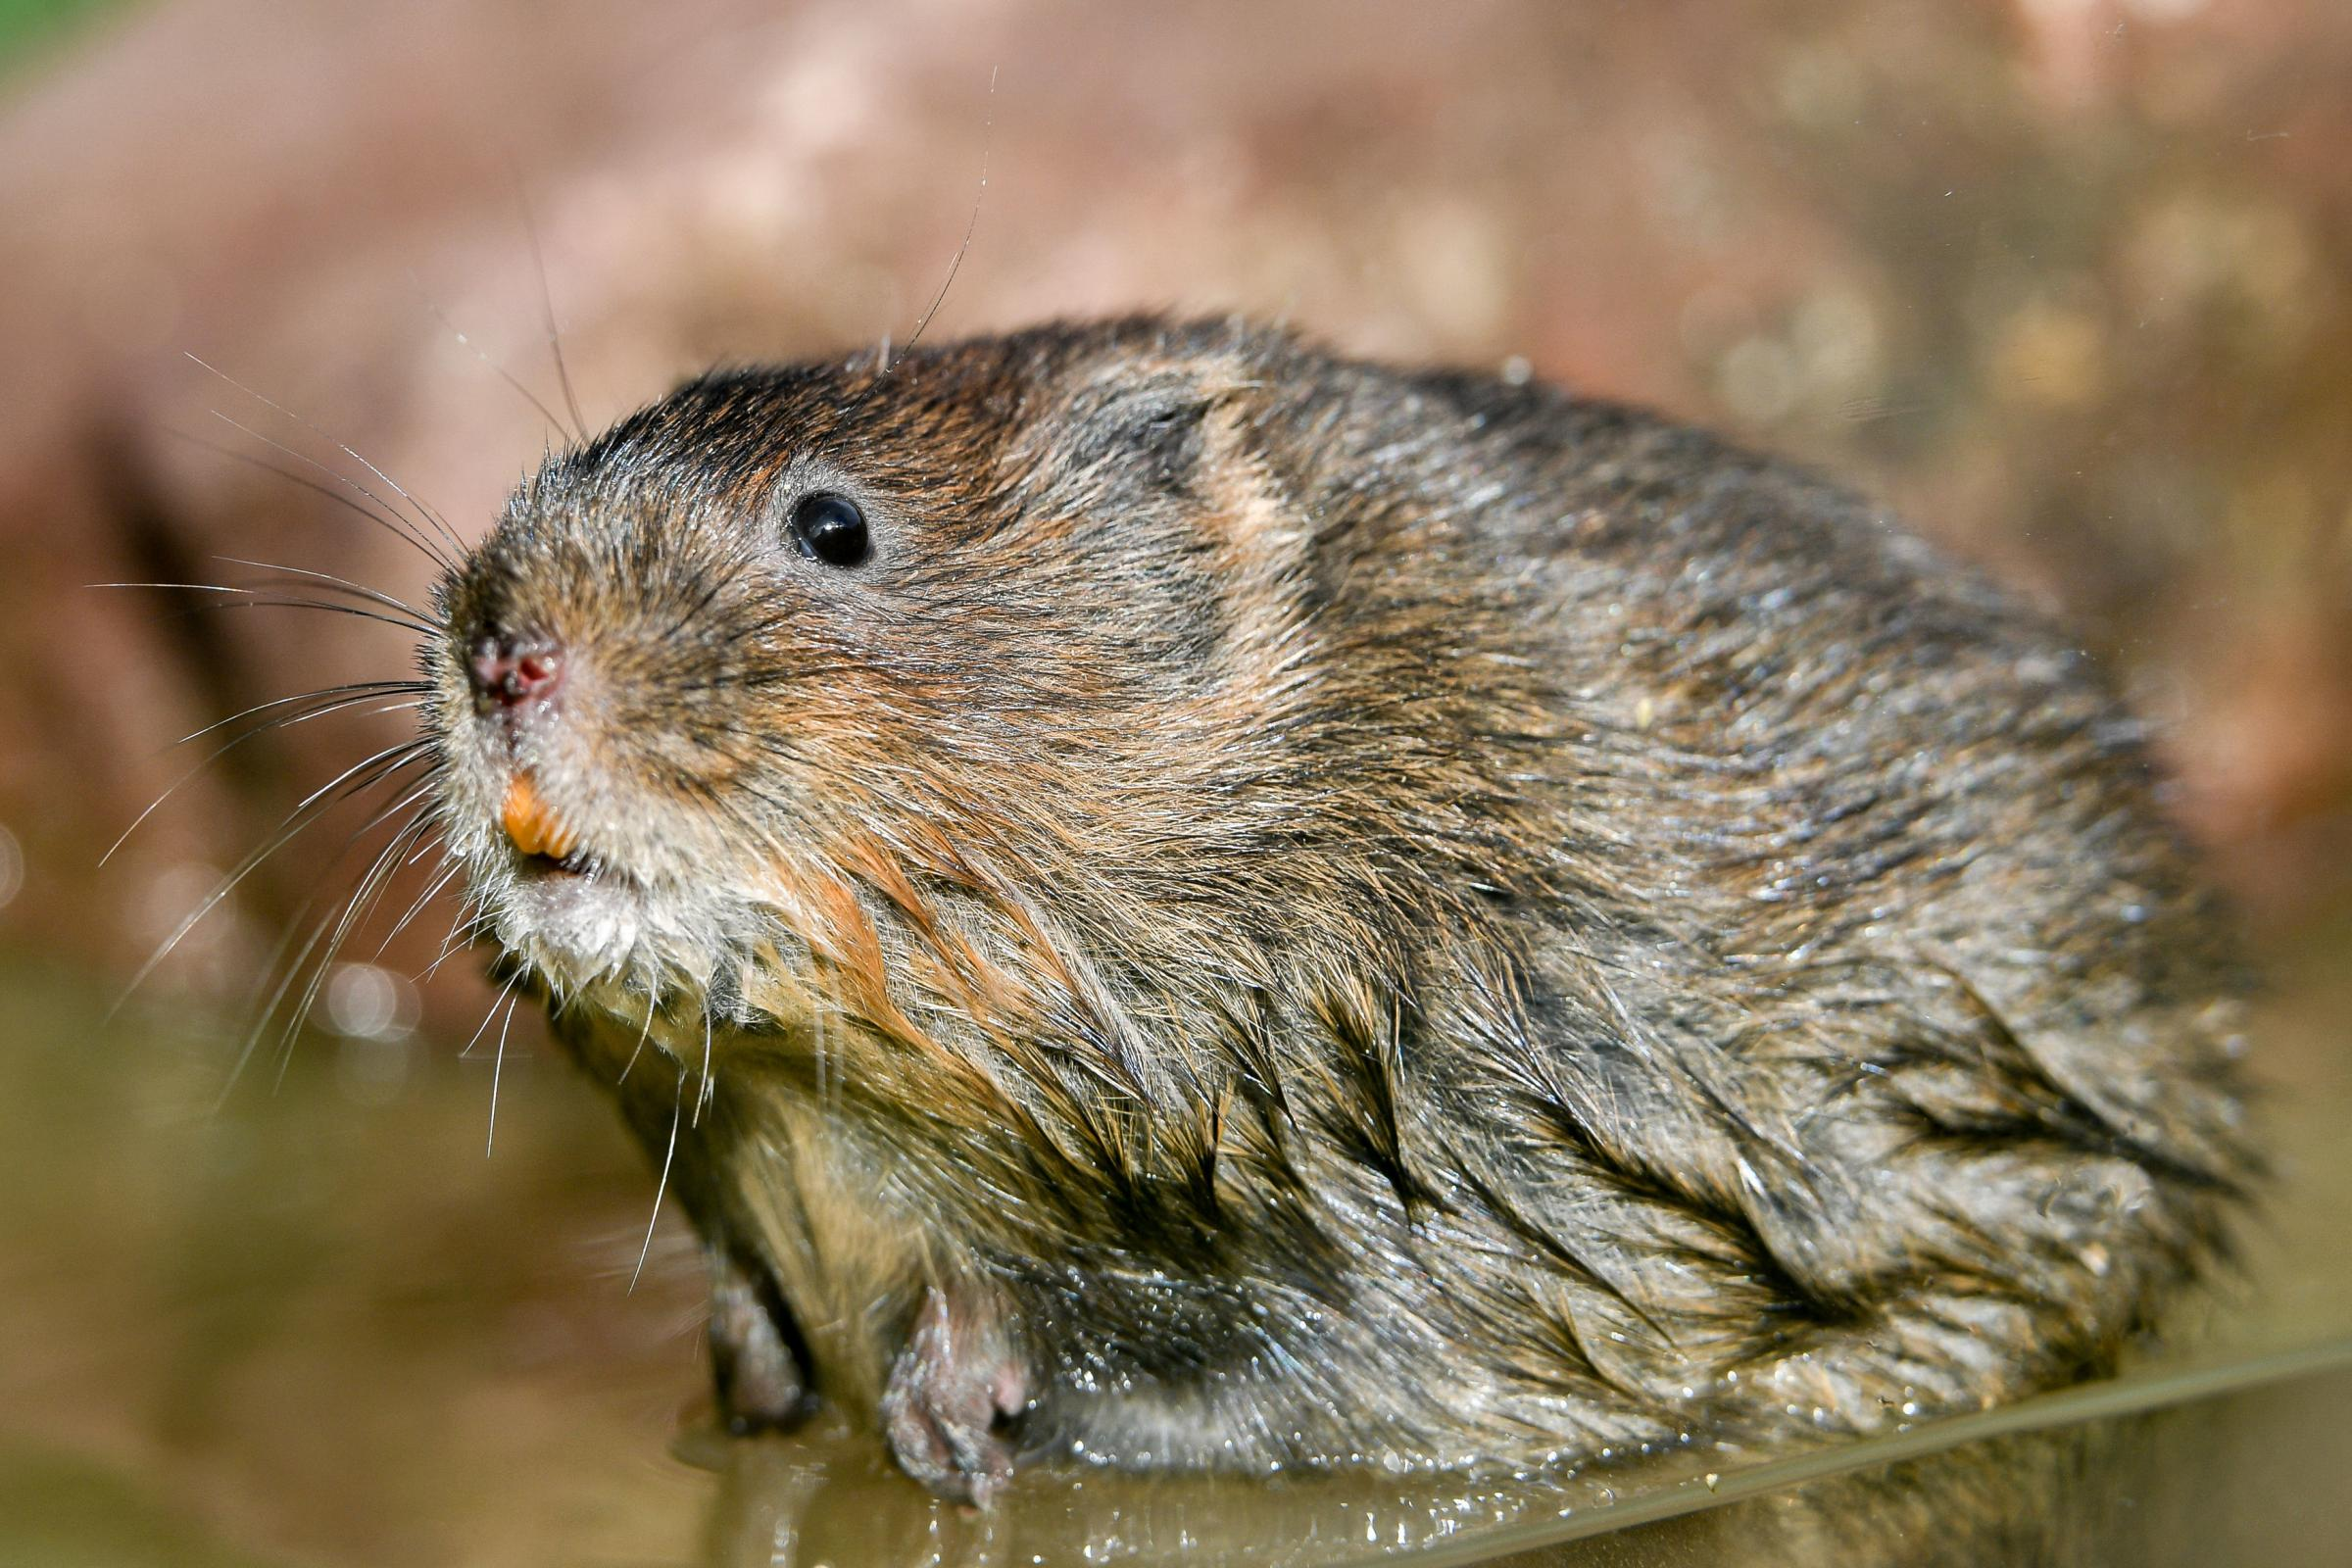 BACK ON EXMOOR: Water voles, a scheme which has been shortlisted for the awards. PICTURE: Ben Birchall/PA Wire